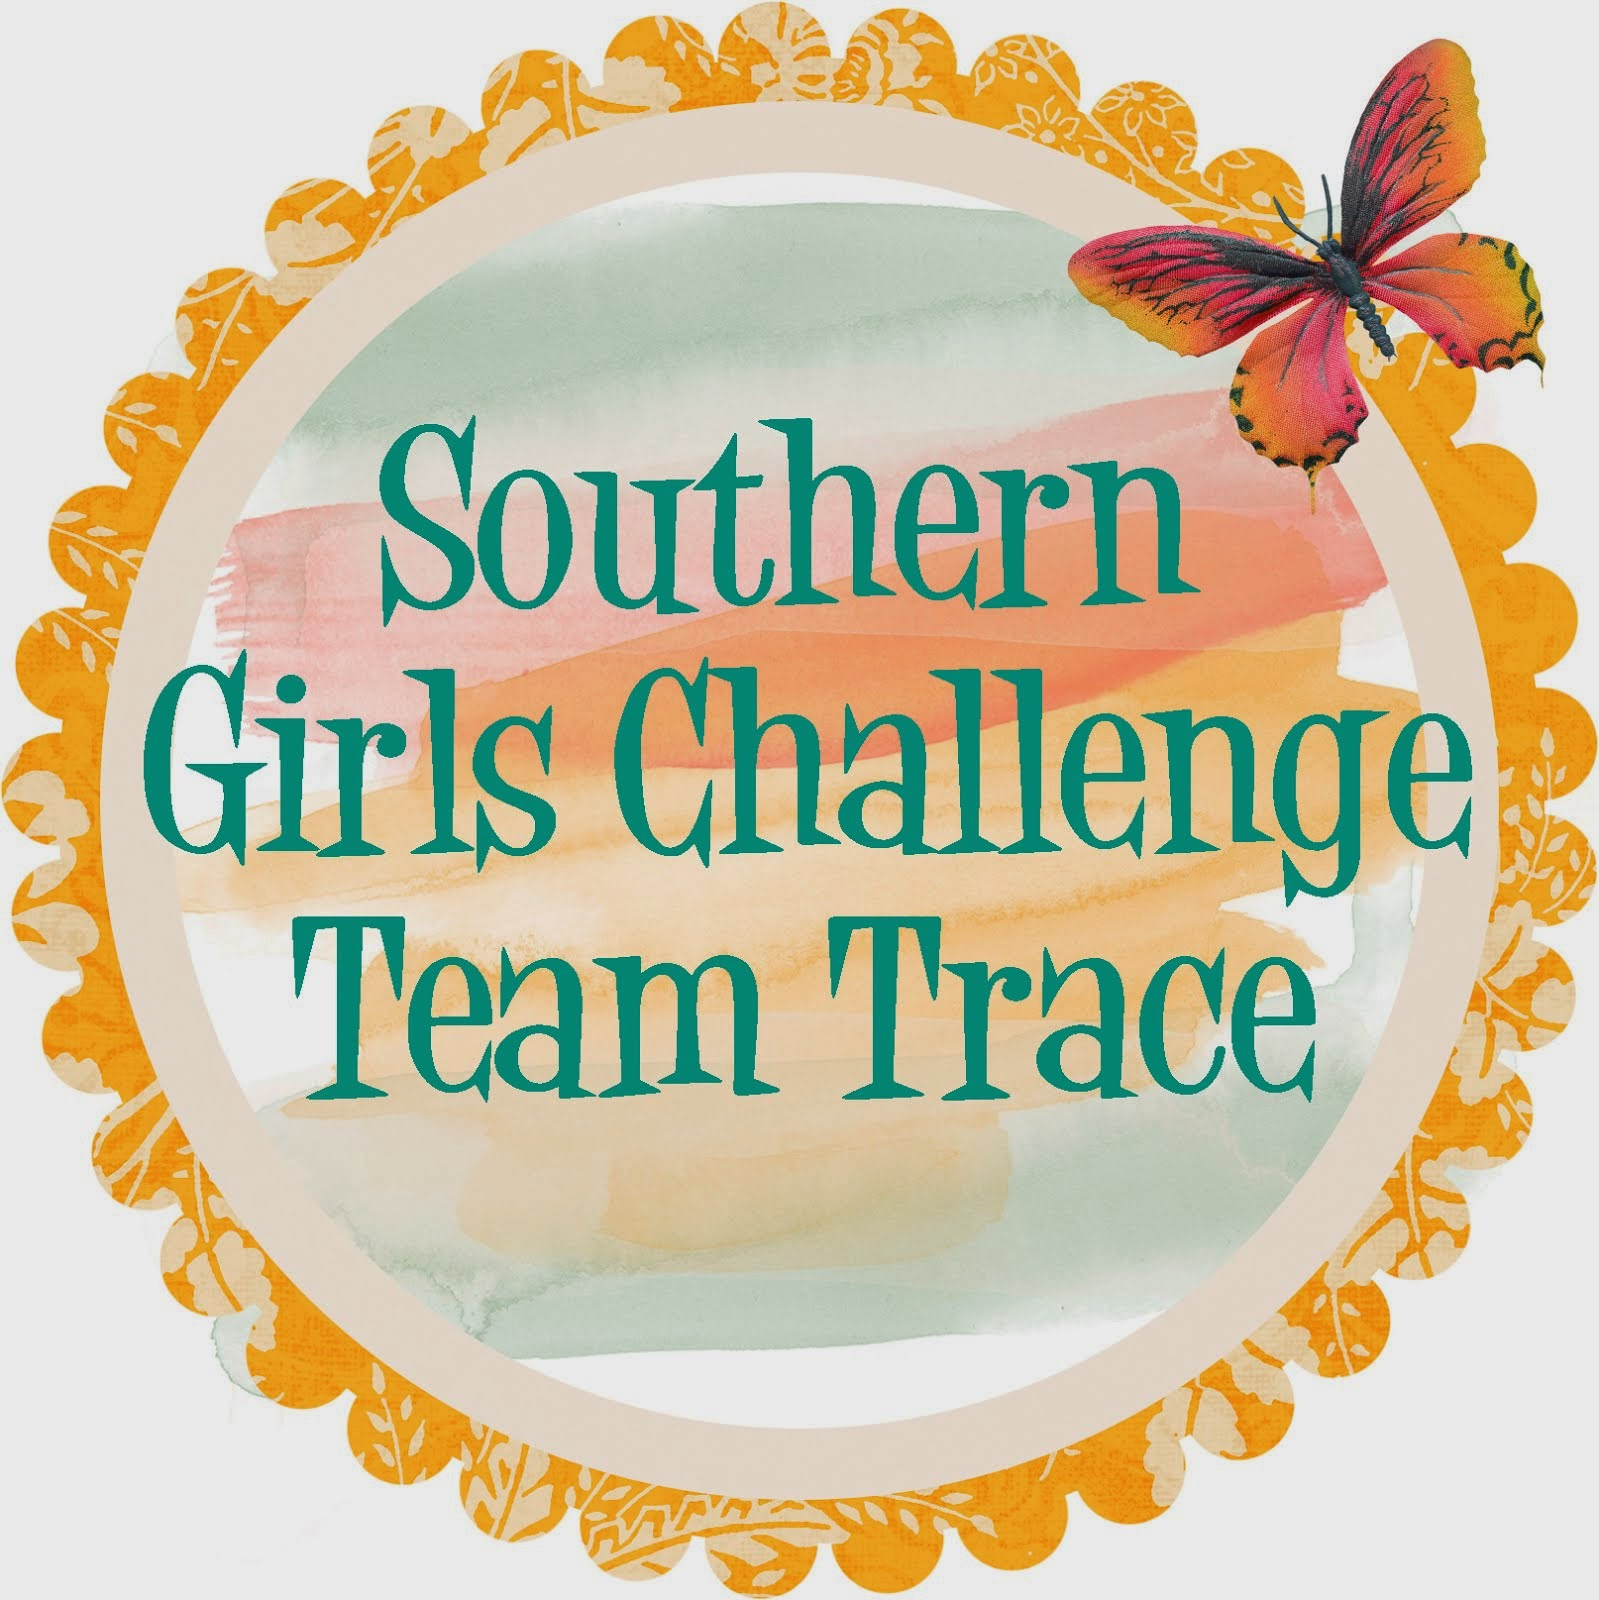 Co owner for Southern Girls Challenges